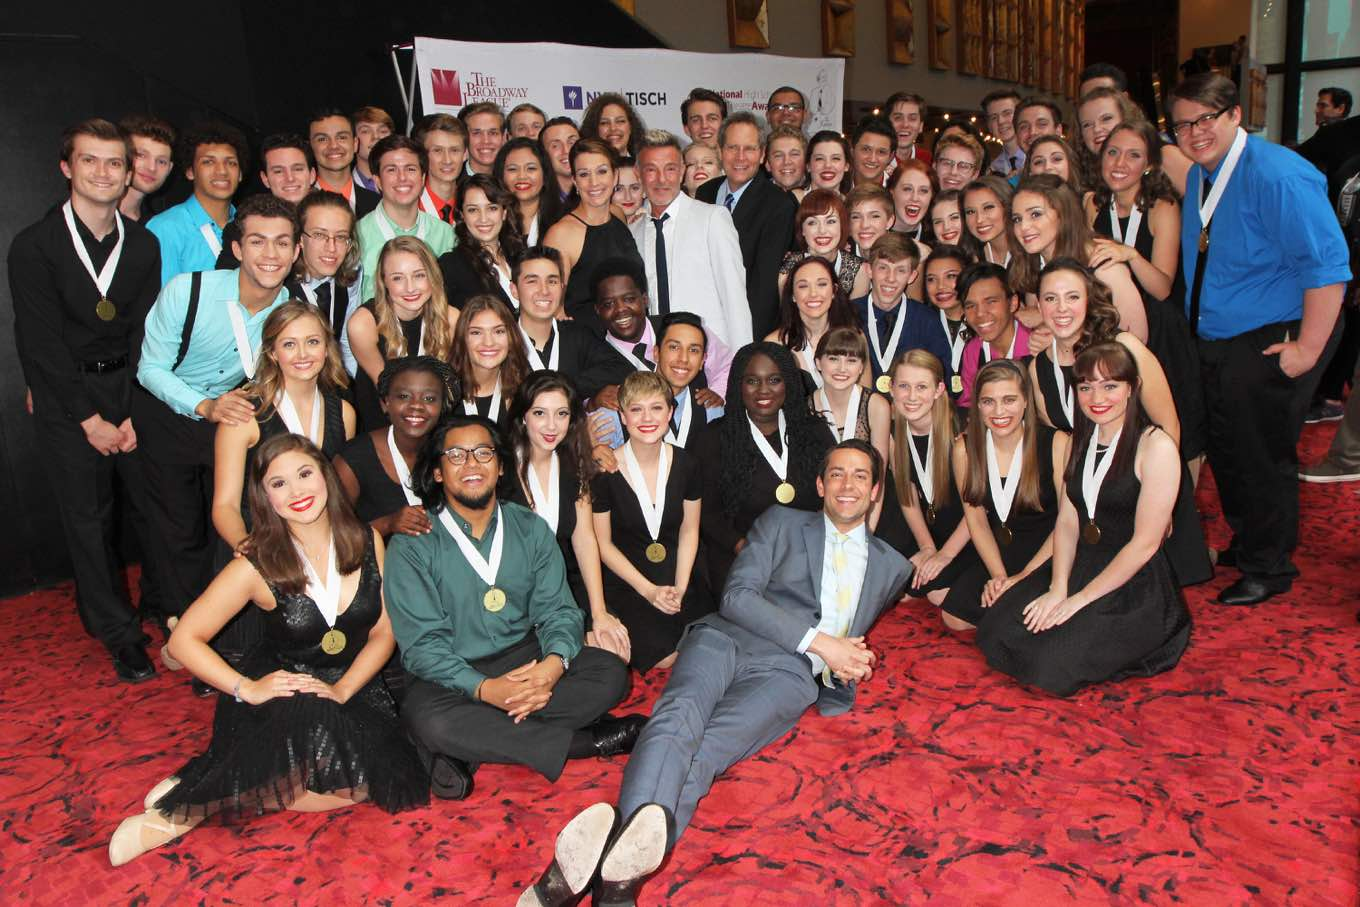 Zachary Levi, Host of the National High School Musical Theater Awards, poses with all the 2016 Nominees. (Photo by Henry McGee)